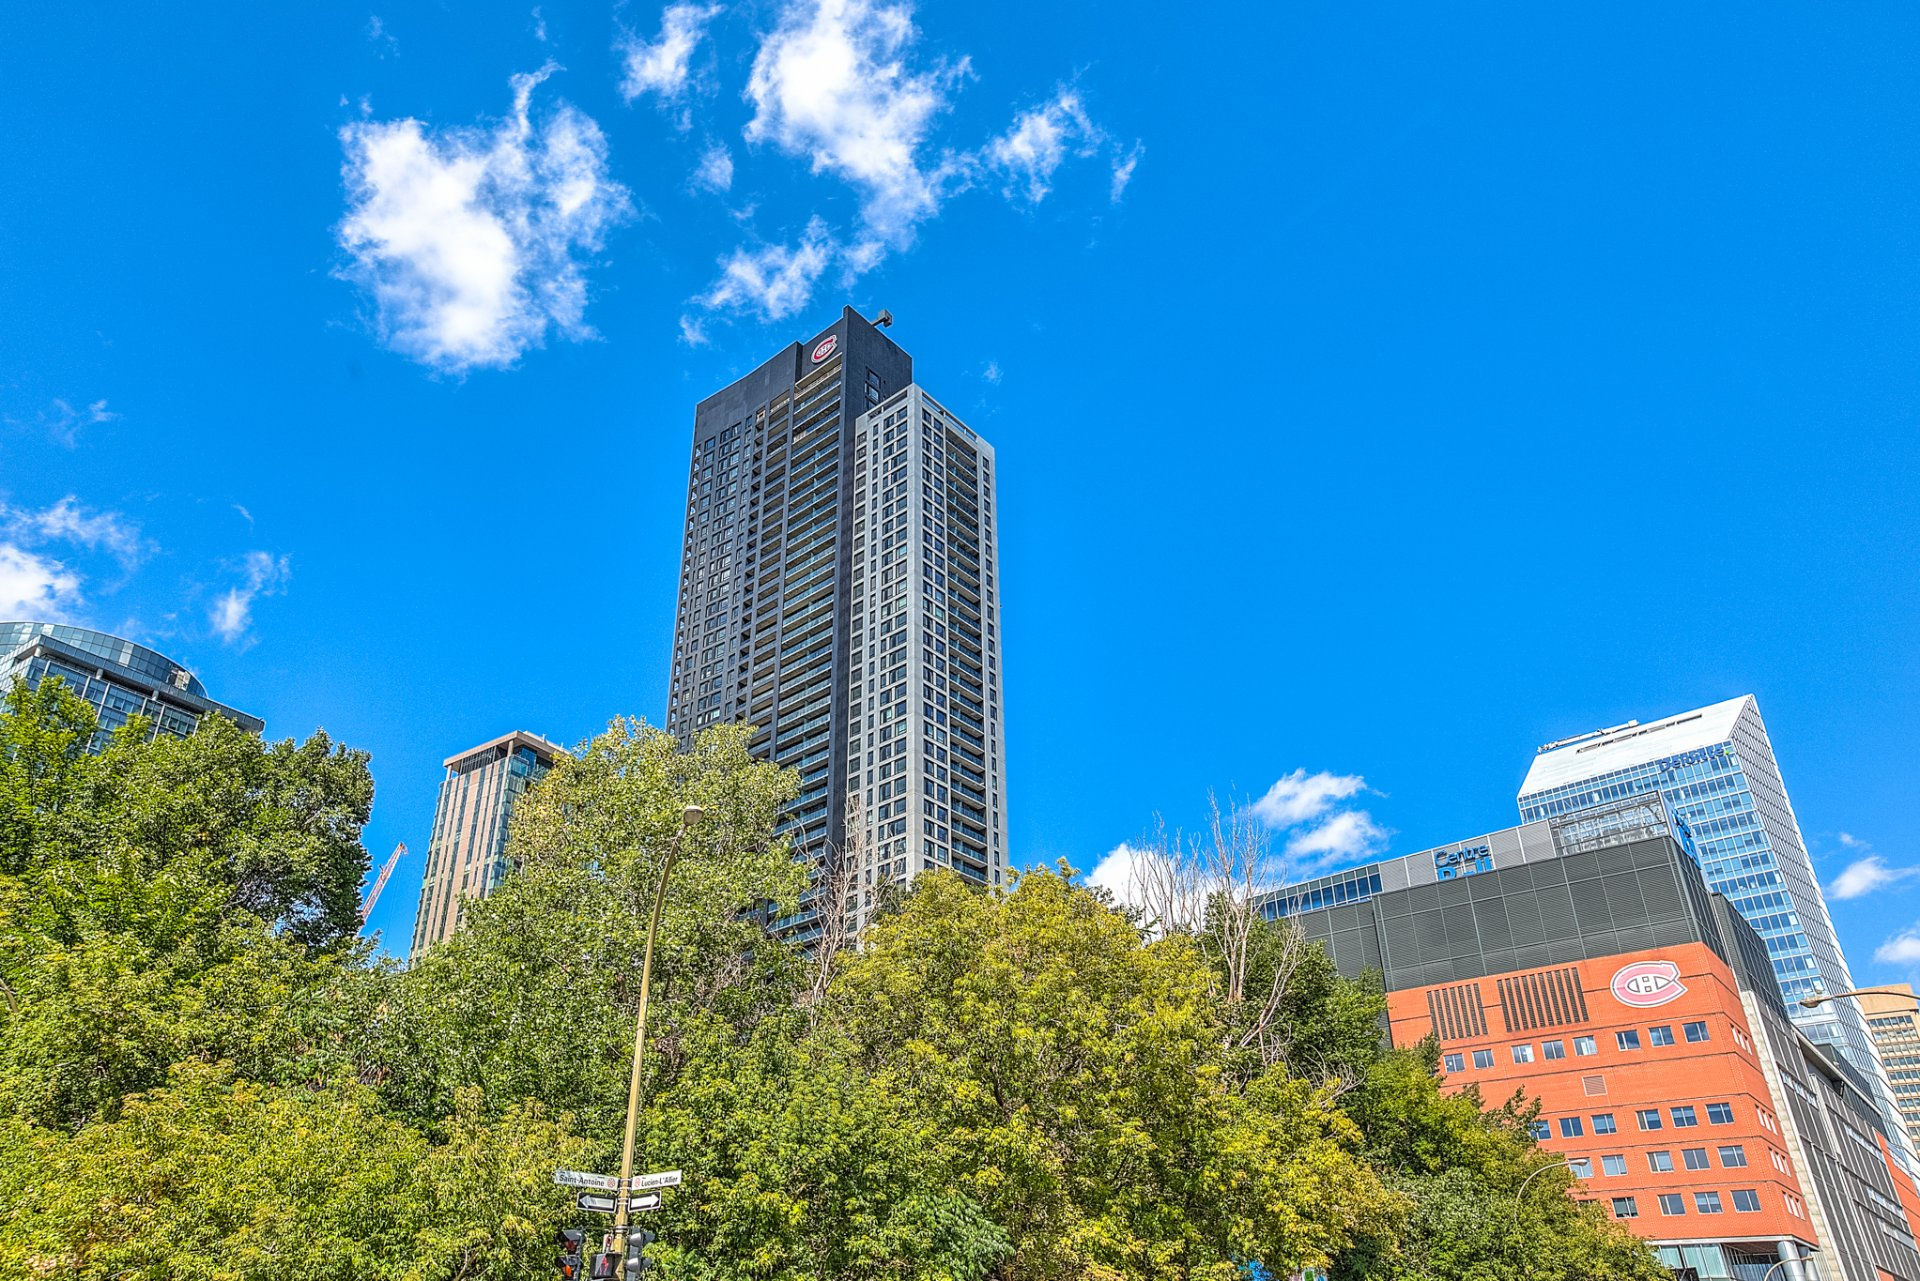 Luxury condo for sale montreal downtown 547 000 for La downtown condo for sale